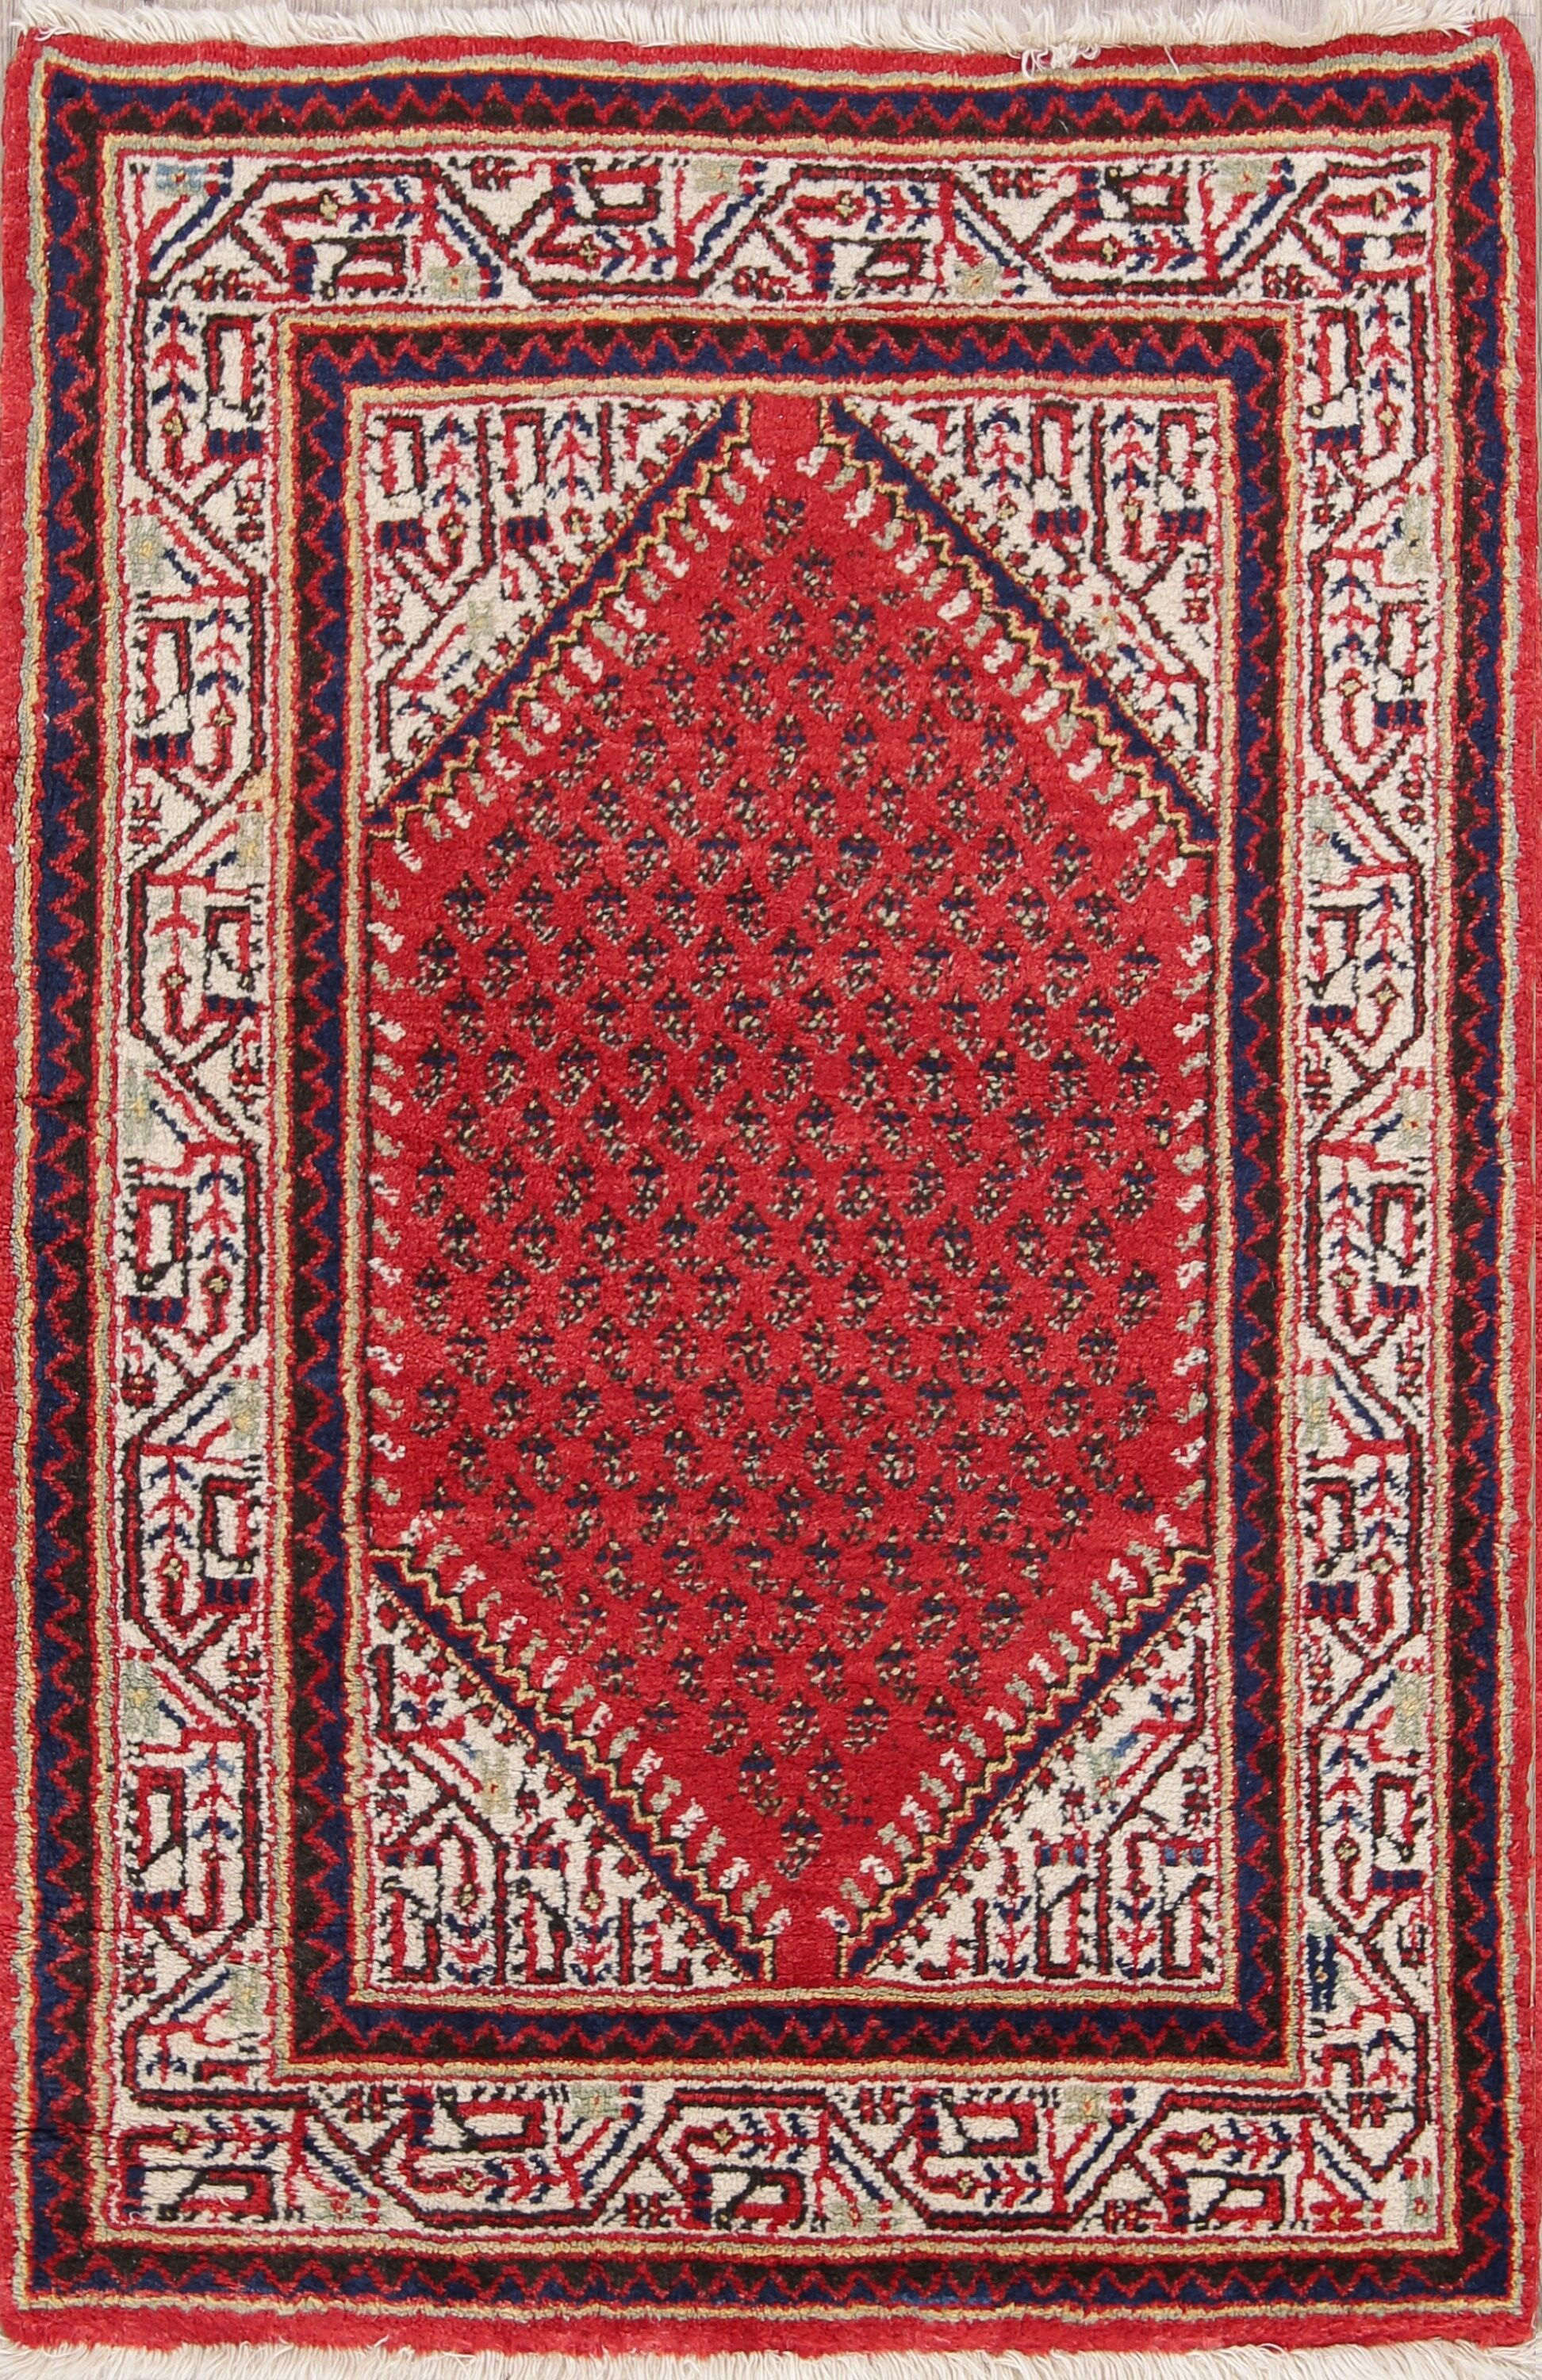 One-of-a-Kind Botemir Geometric Persian Hand-Knotted 2'8